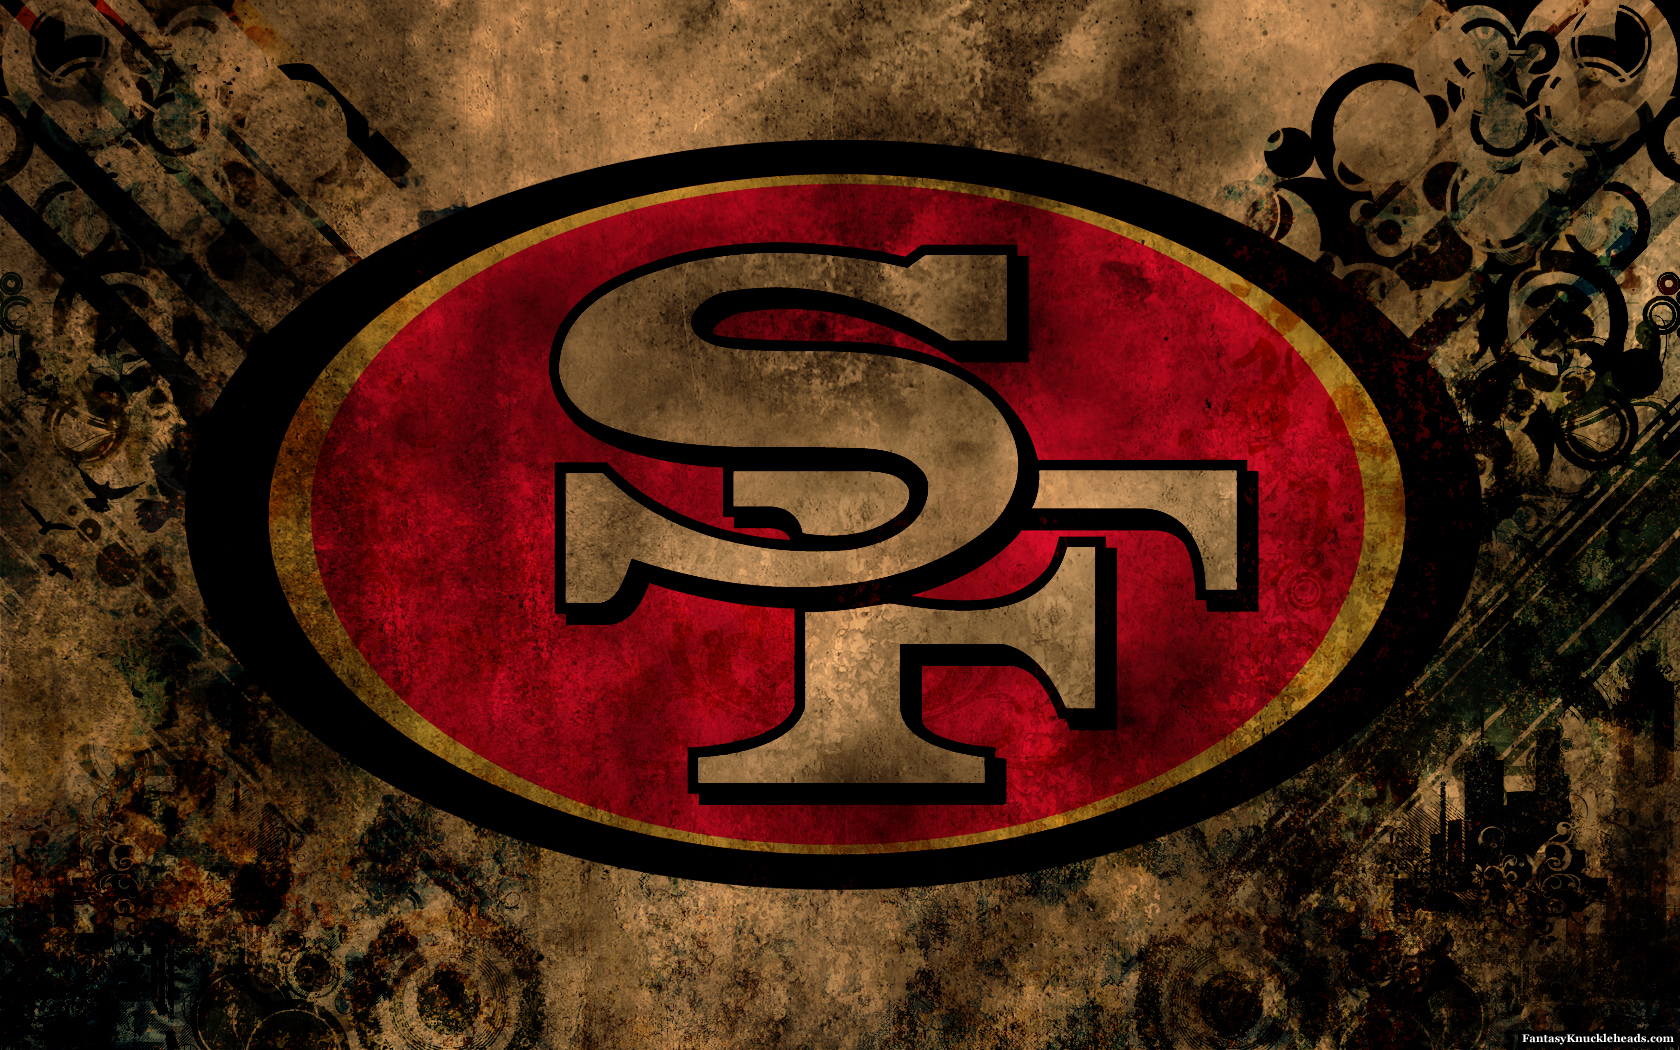 Francisco 49ers wallpaper HD images San Francisco 49ers wallpapers 1680x1050